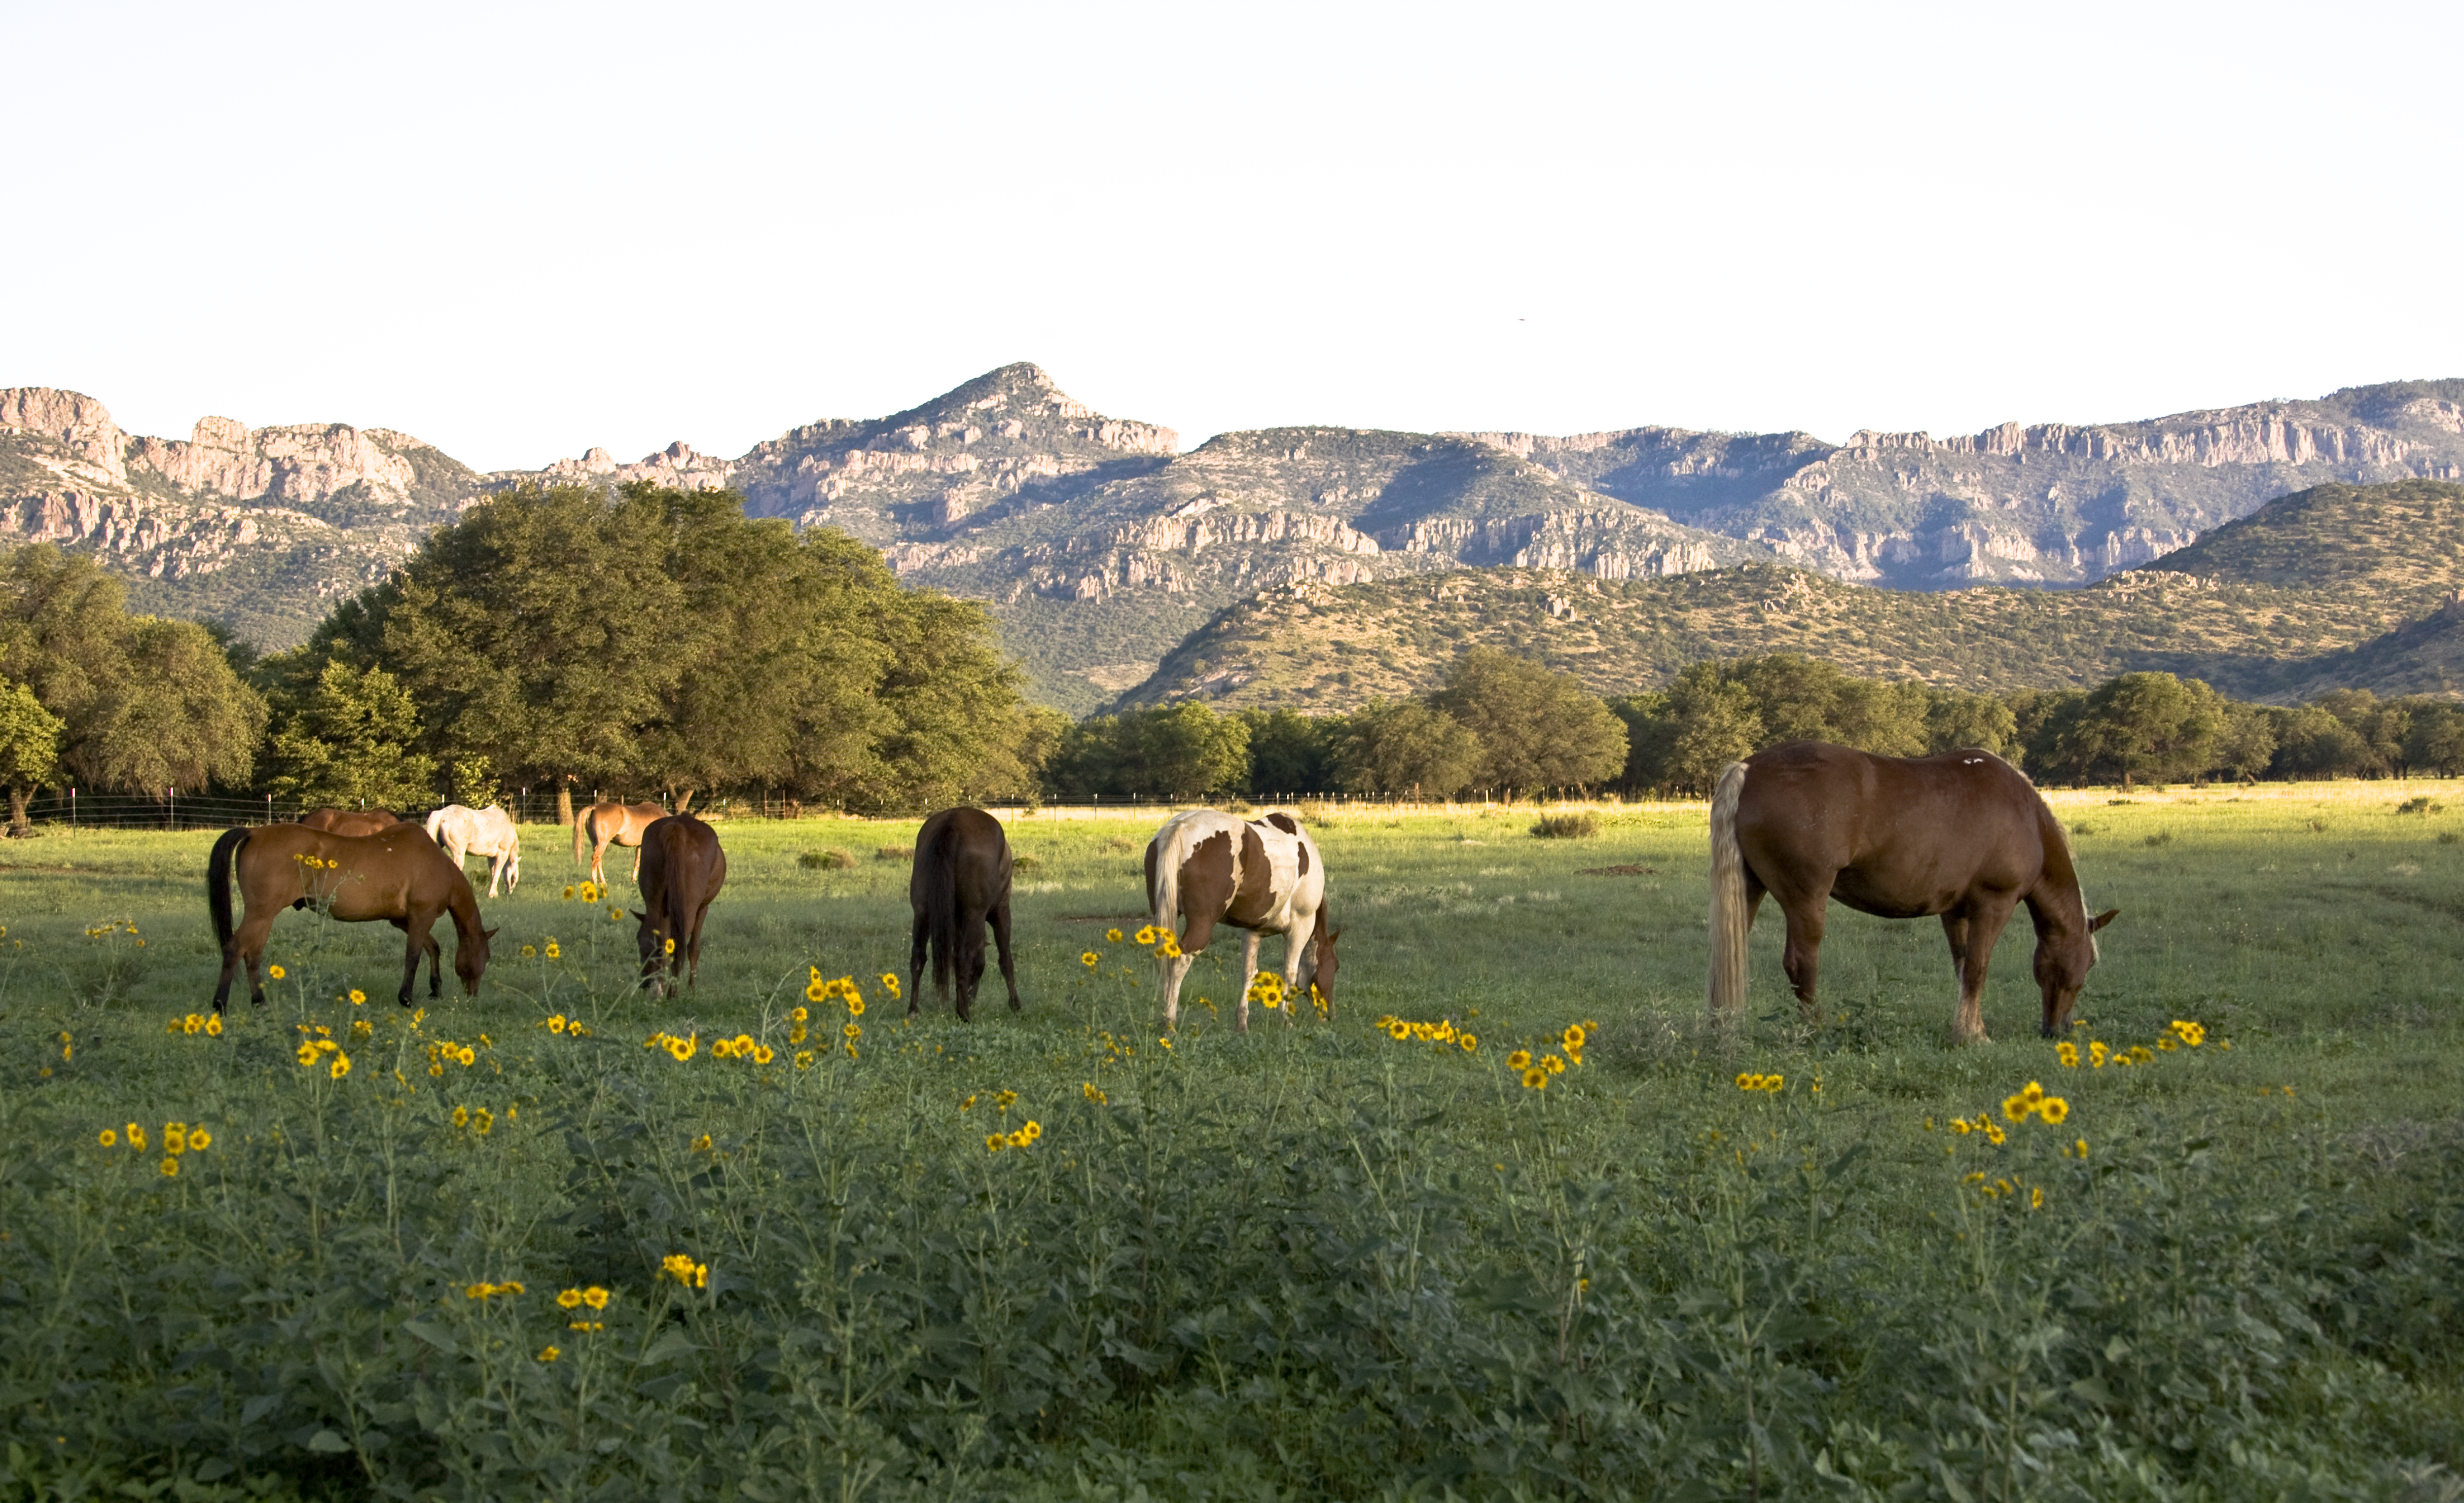 Flowers, Horses and Mountains